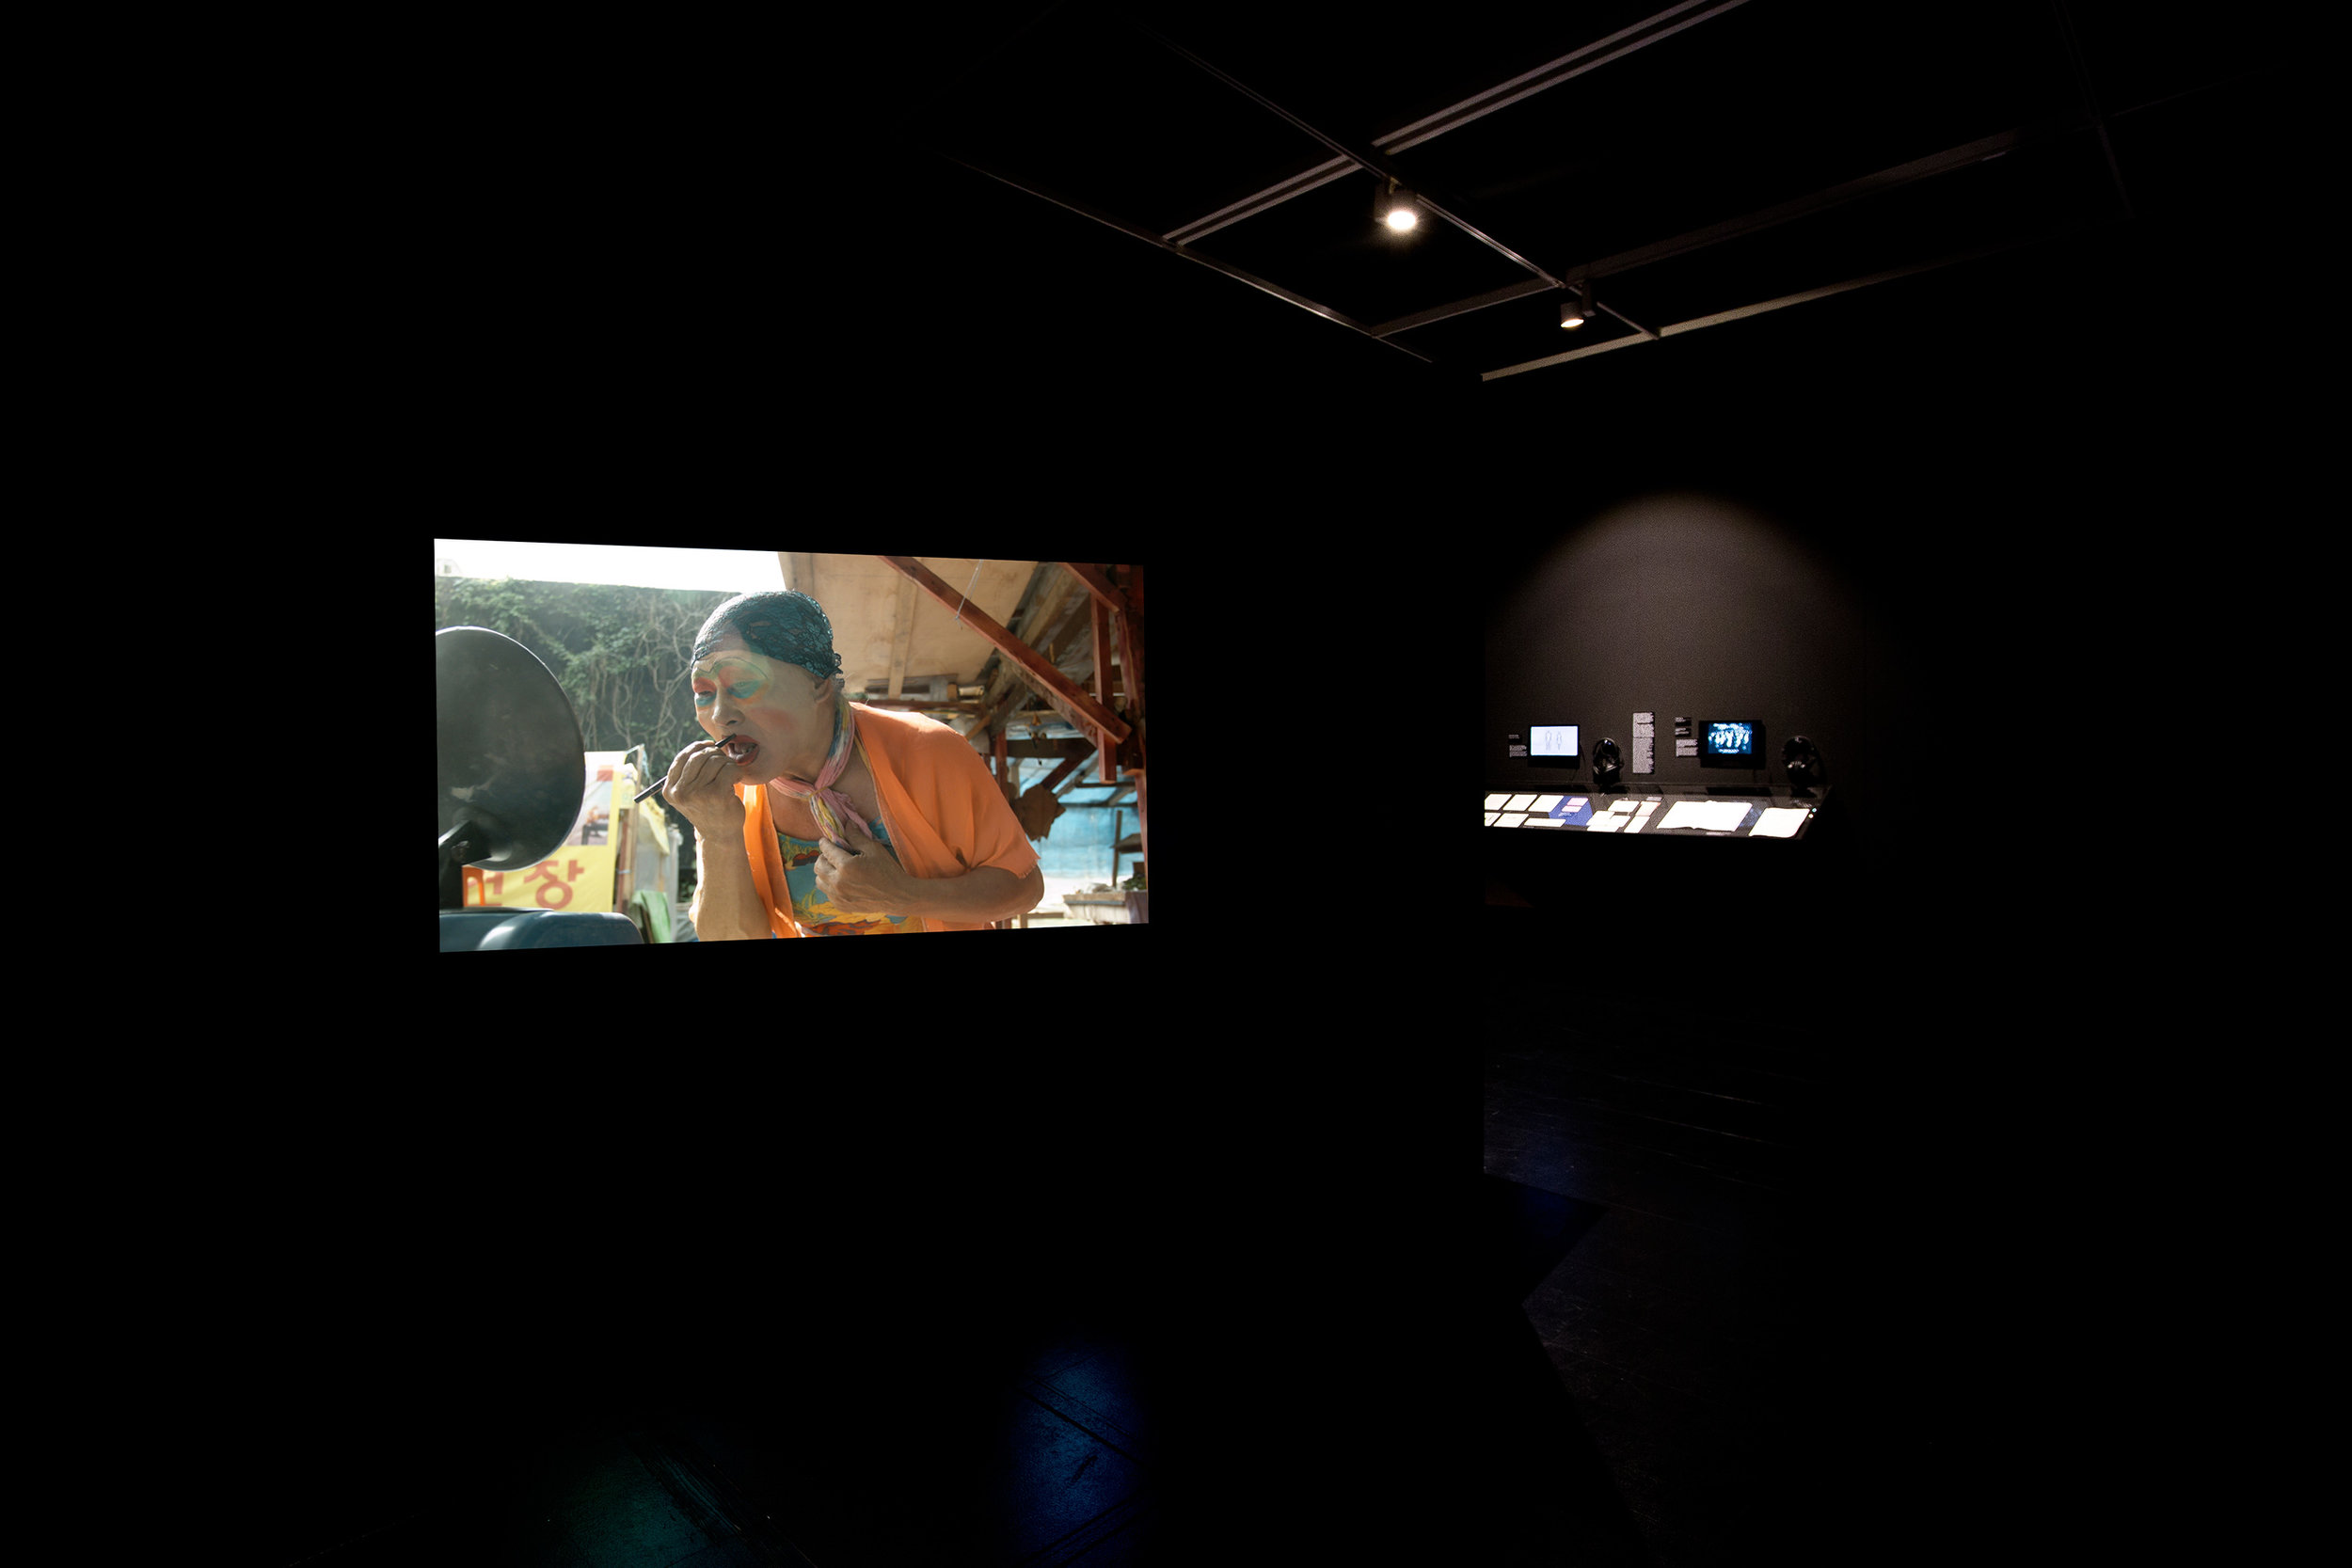 Installation view: Buk Seoul Museum of Art,  Asian Diva: The Muse and the Monster, Korea. Photo credit:Byunghun Min/Halo Studio.